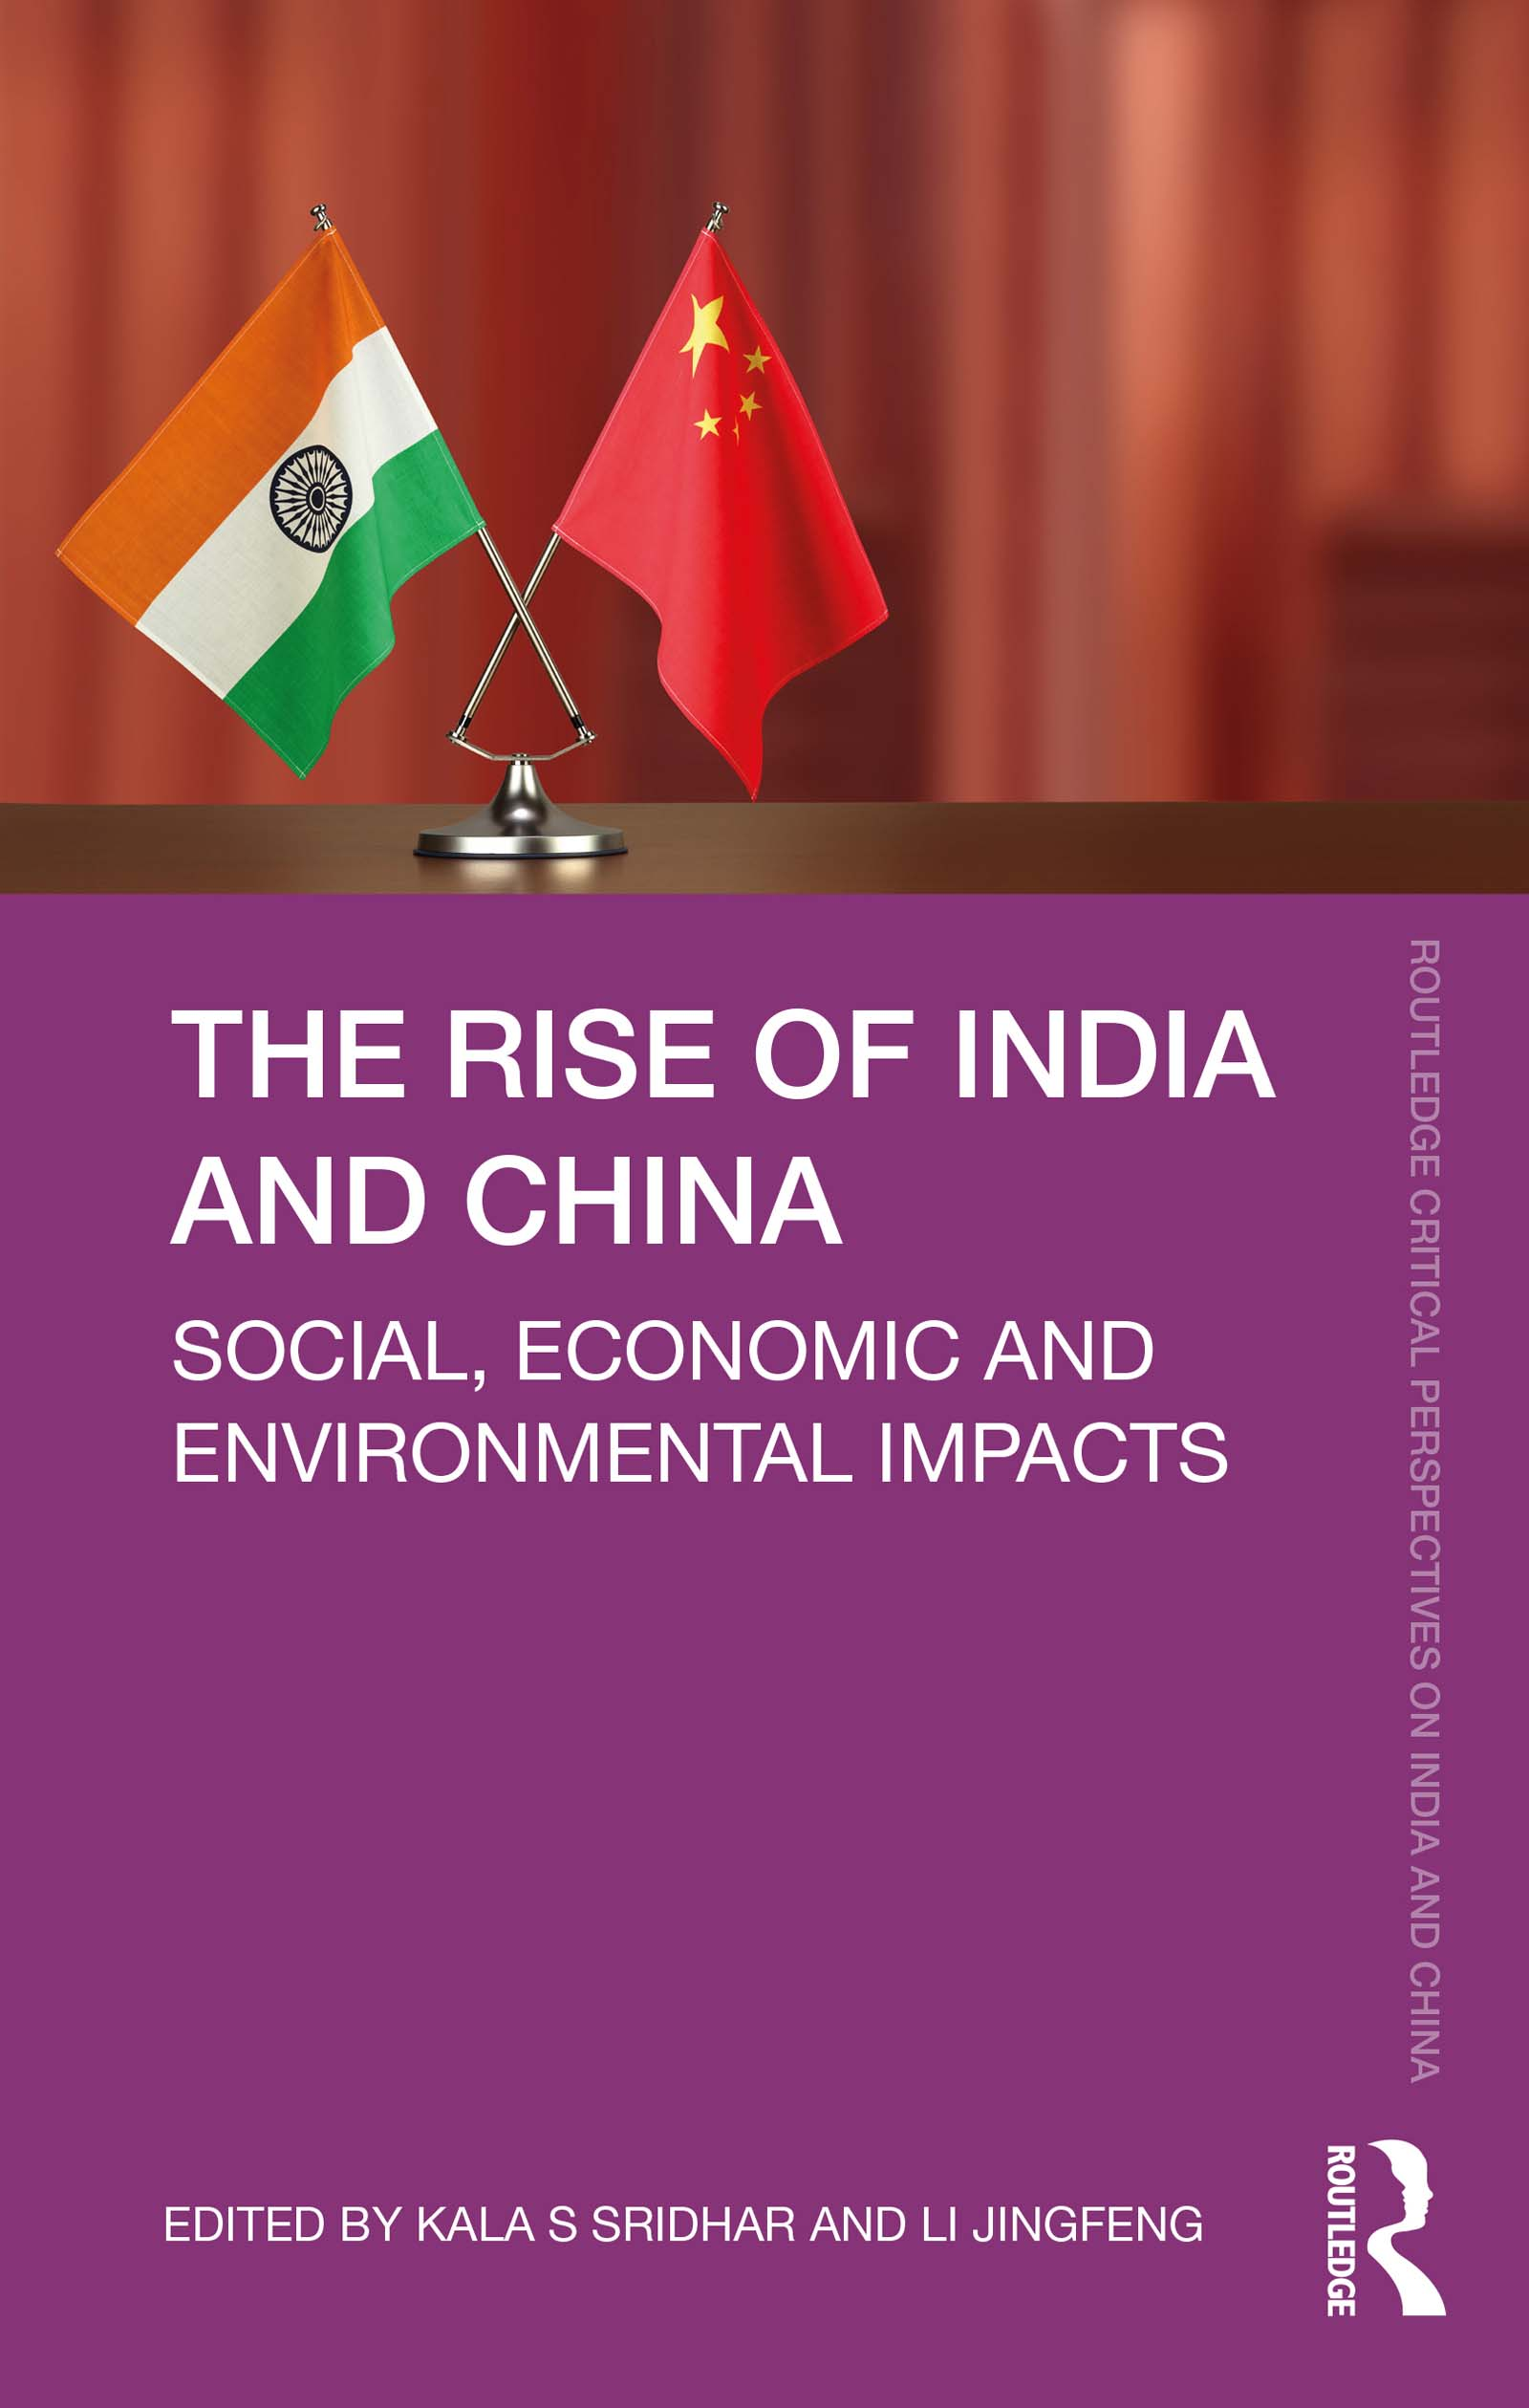 The Rise of India and China